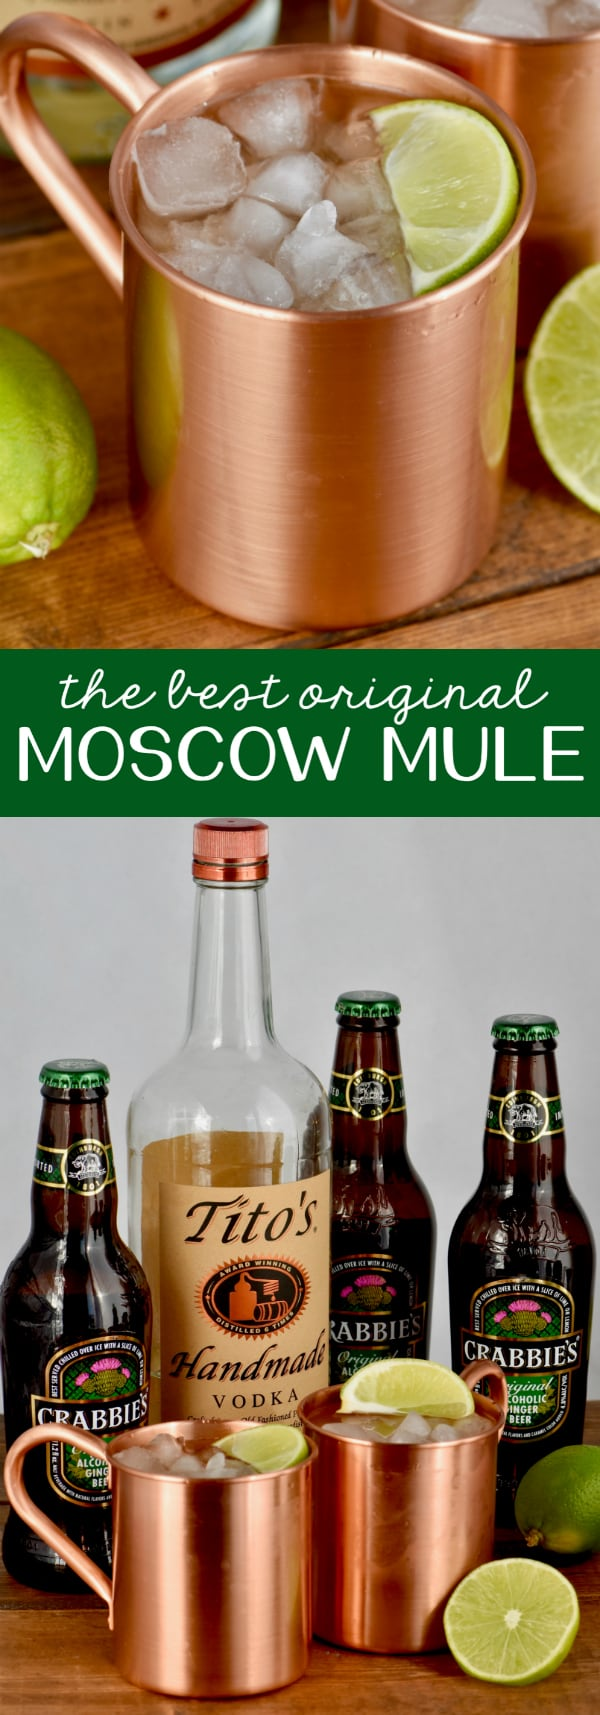 This is the best Moscow Mule Recipe! It is made with vodka, lime juice, and ginger beer, though you could replace the vodka with rum and and some mint for a fun twist!